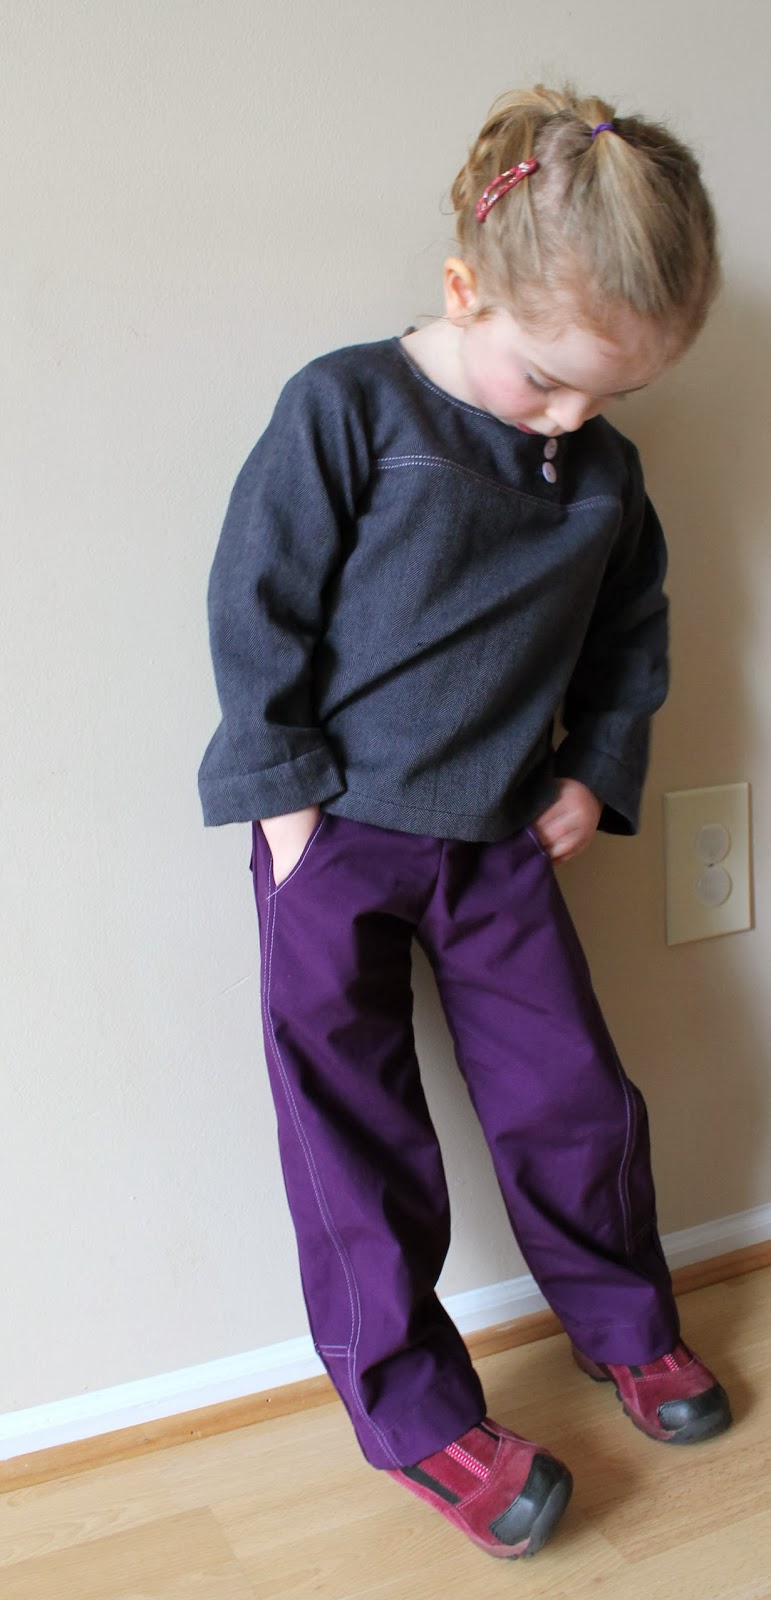 Oliver + S After-School Shirt & Pants | Create a sporty look with lots of top-stitching | The Inspired Wren